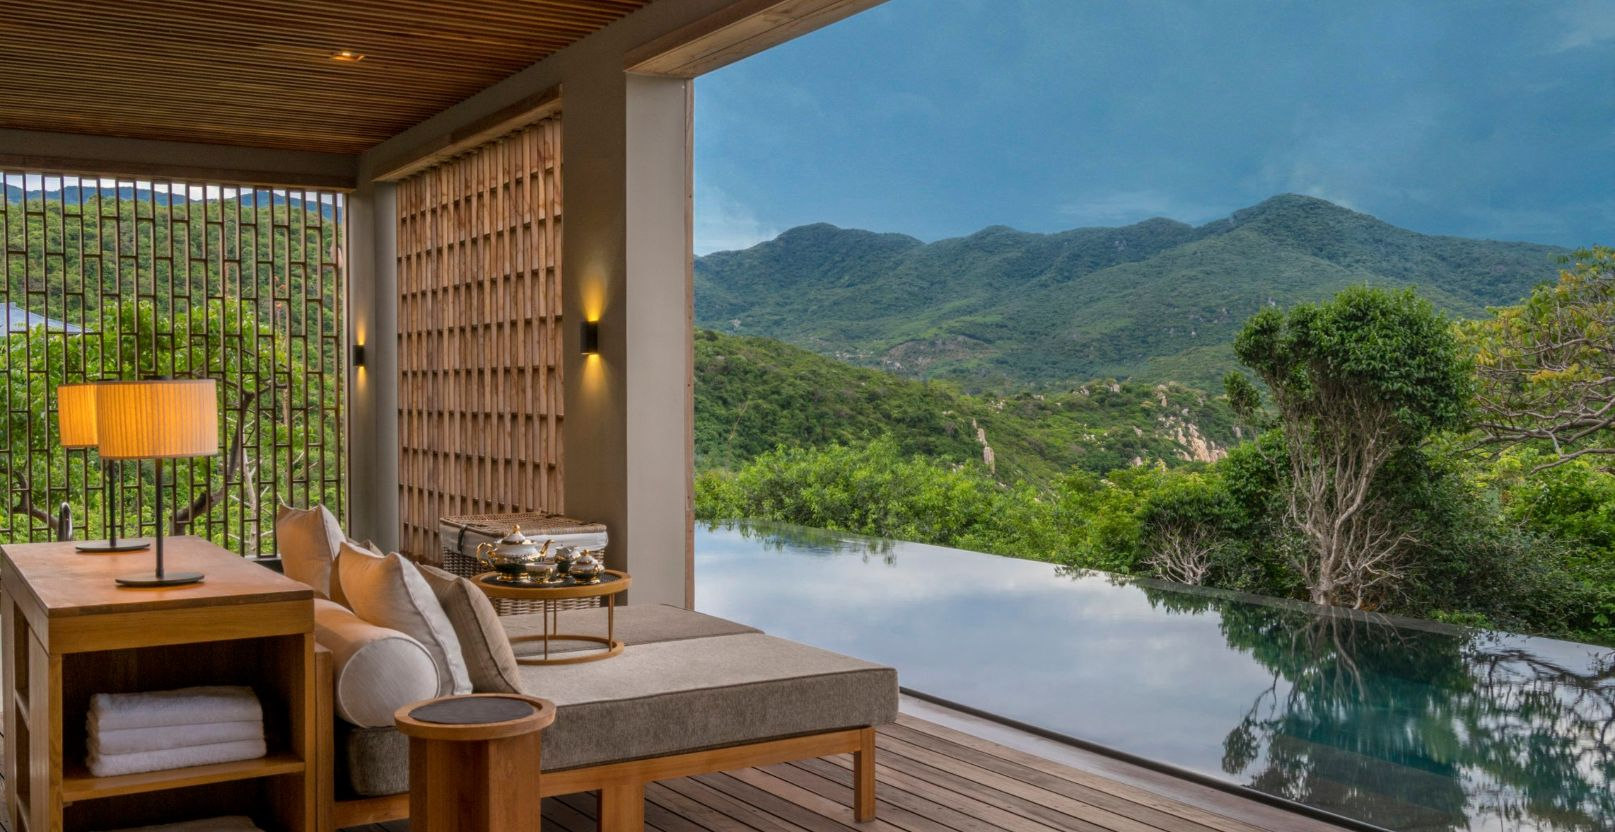 The Right Direction: Vietnam's Amanoi Offers Secluded Getaway